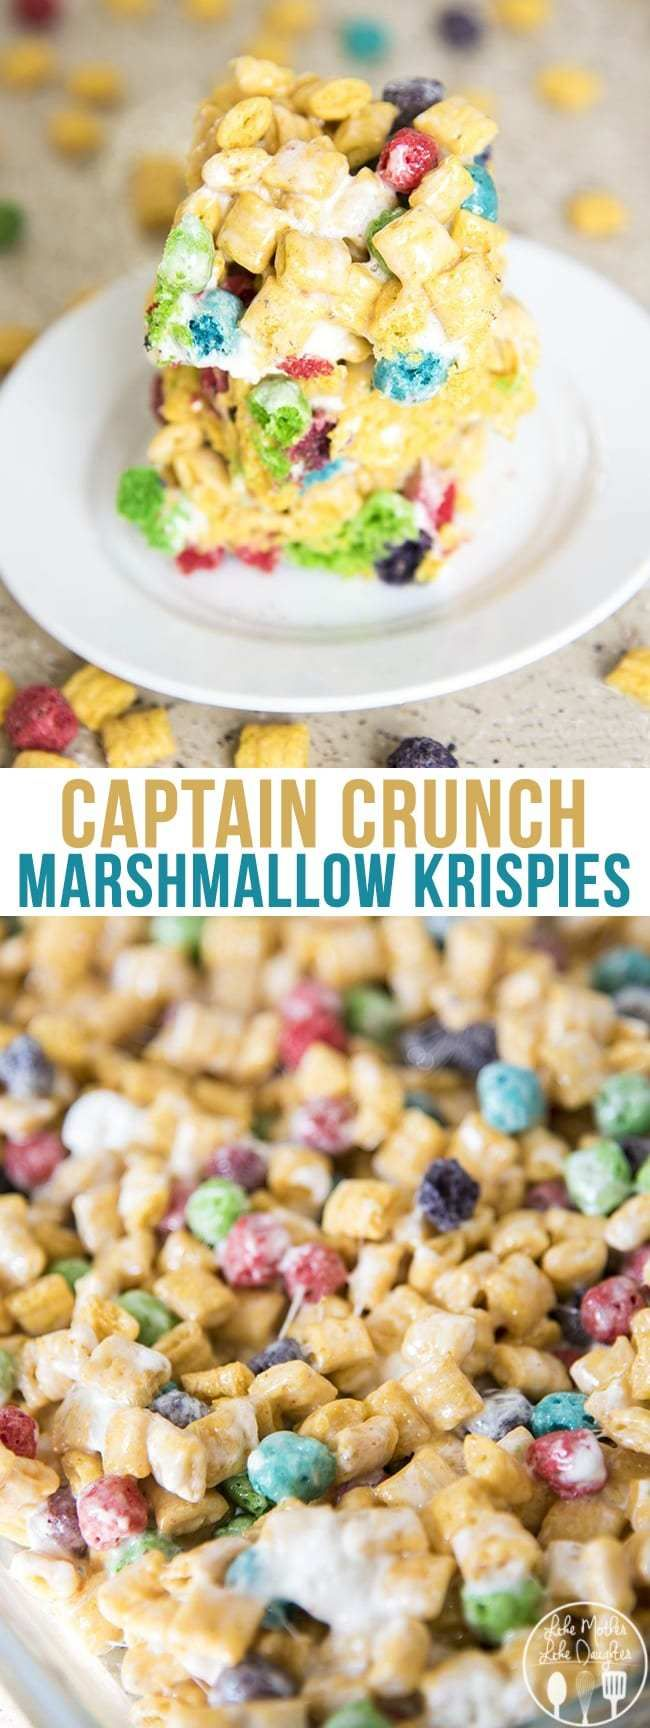 Captain crunch rice krispies are gooey cereal bars made with captain crunch cereal and marshmallows! They're the perfect snack for Cap'n Crunch lovers! #marshmallows